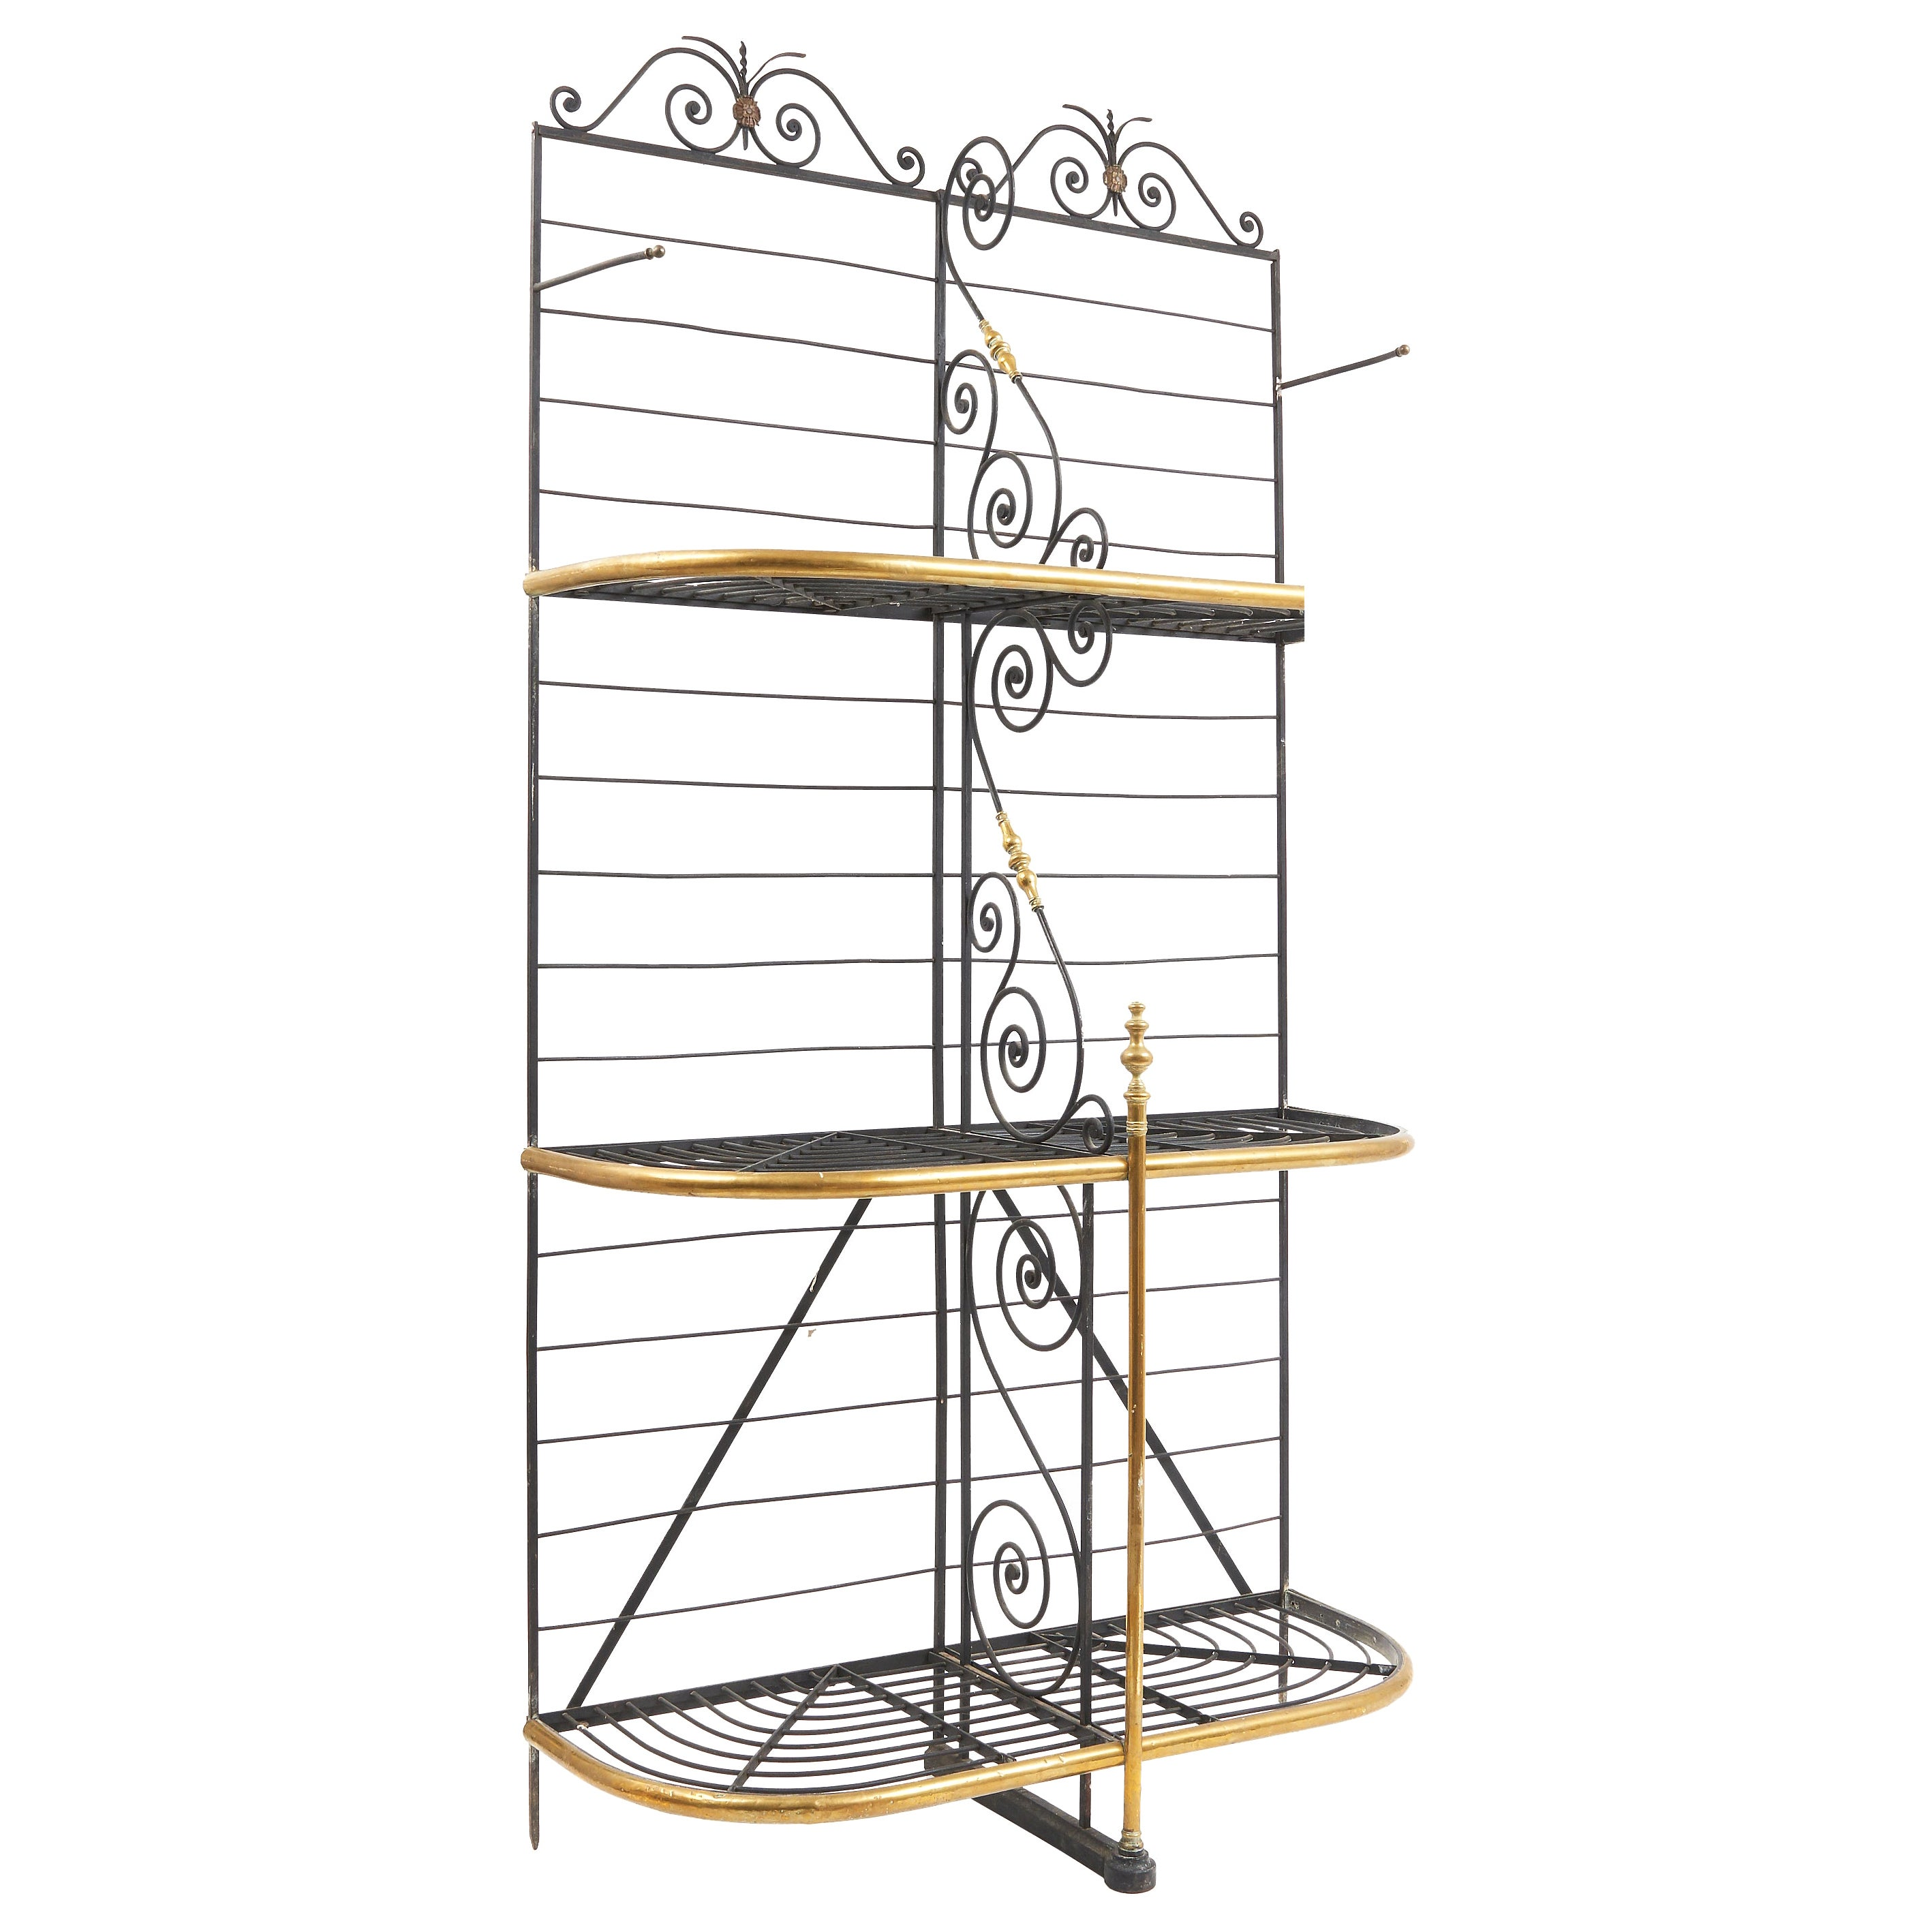 Wrought Iron and Brass Baker's Rack, France, circa 1880